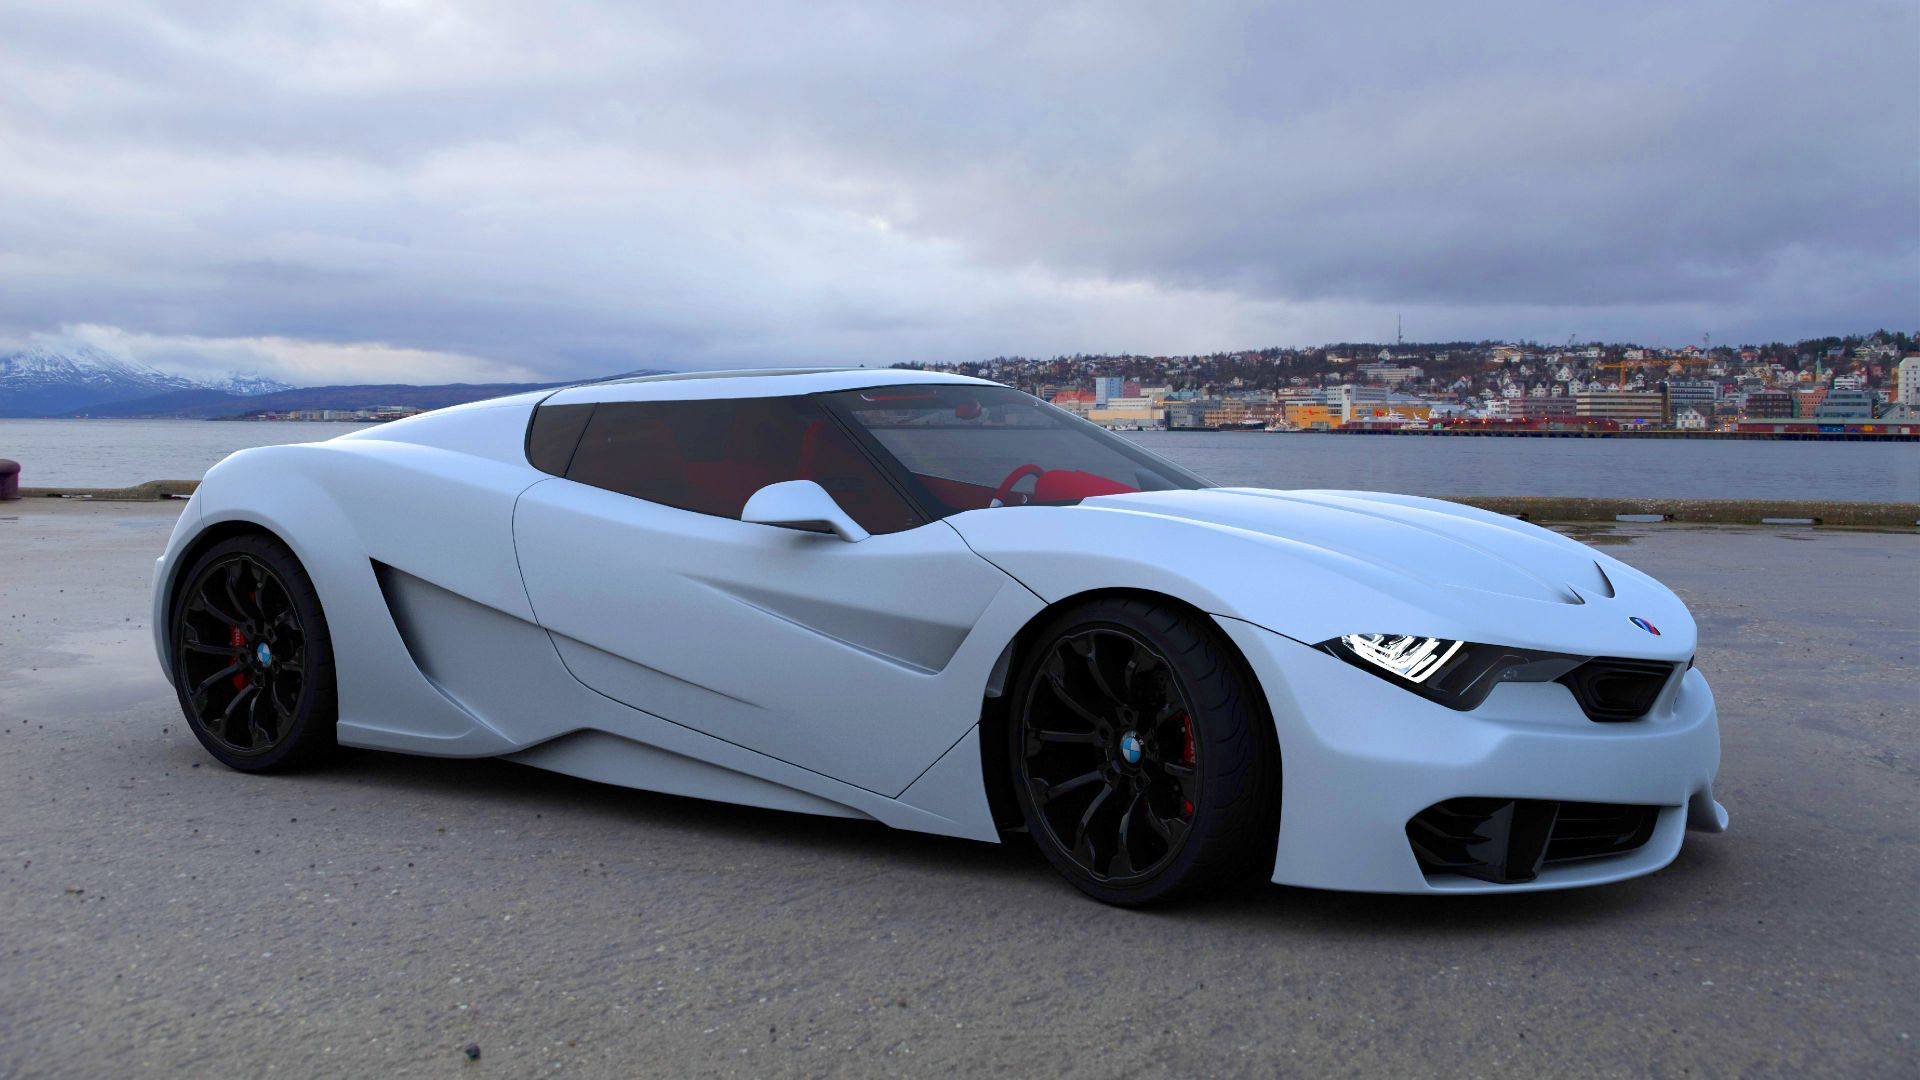 Wallpaper BMW M9, roadster, coupe, white, Cars & Bikes #7014